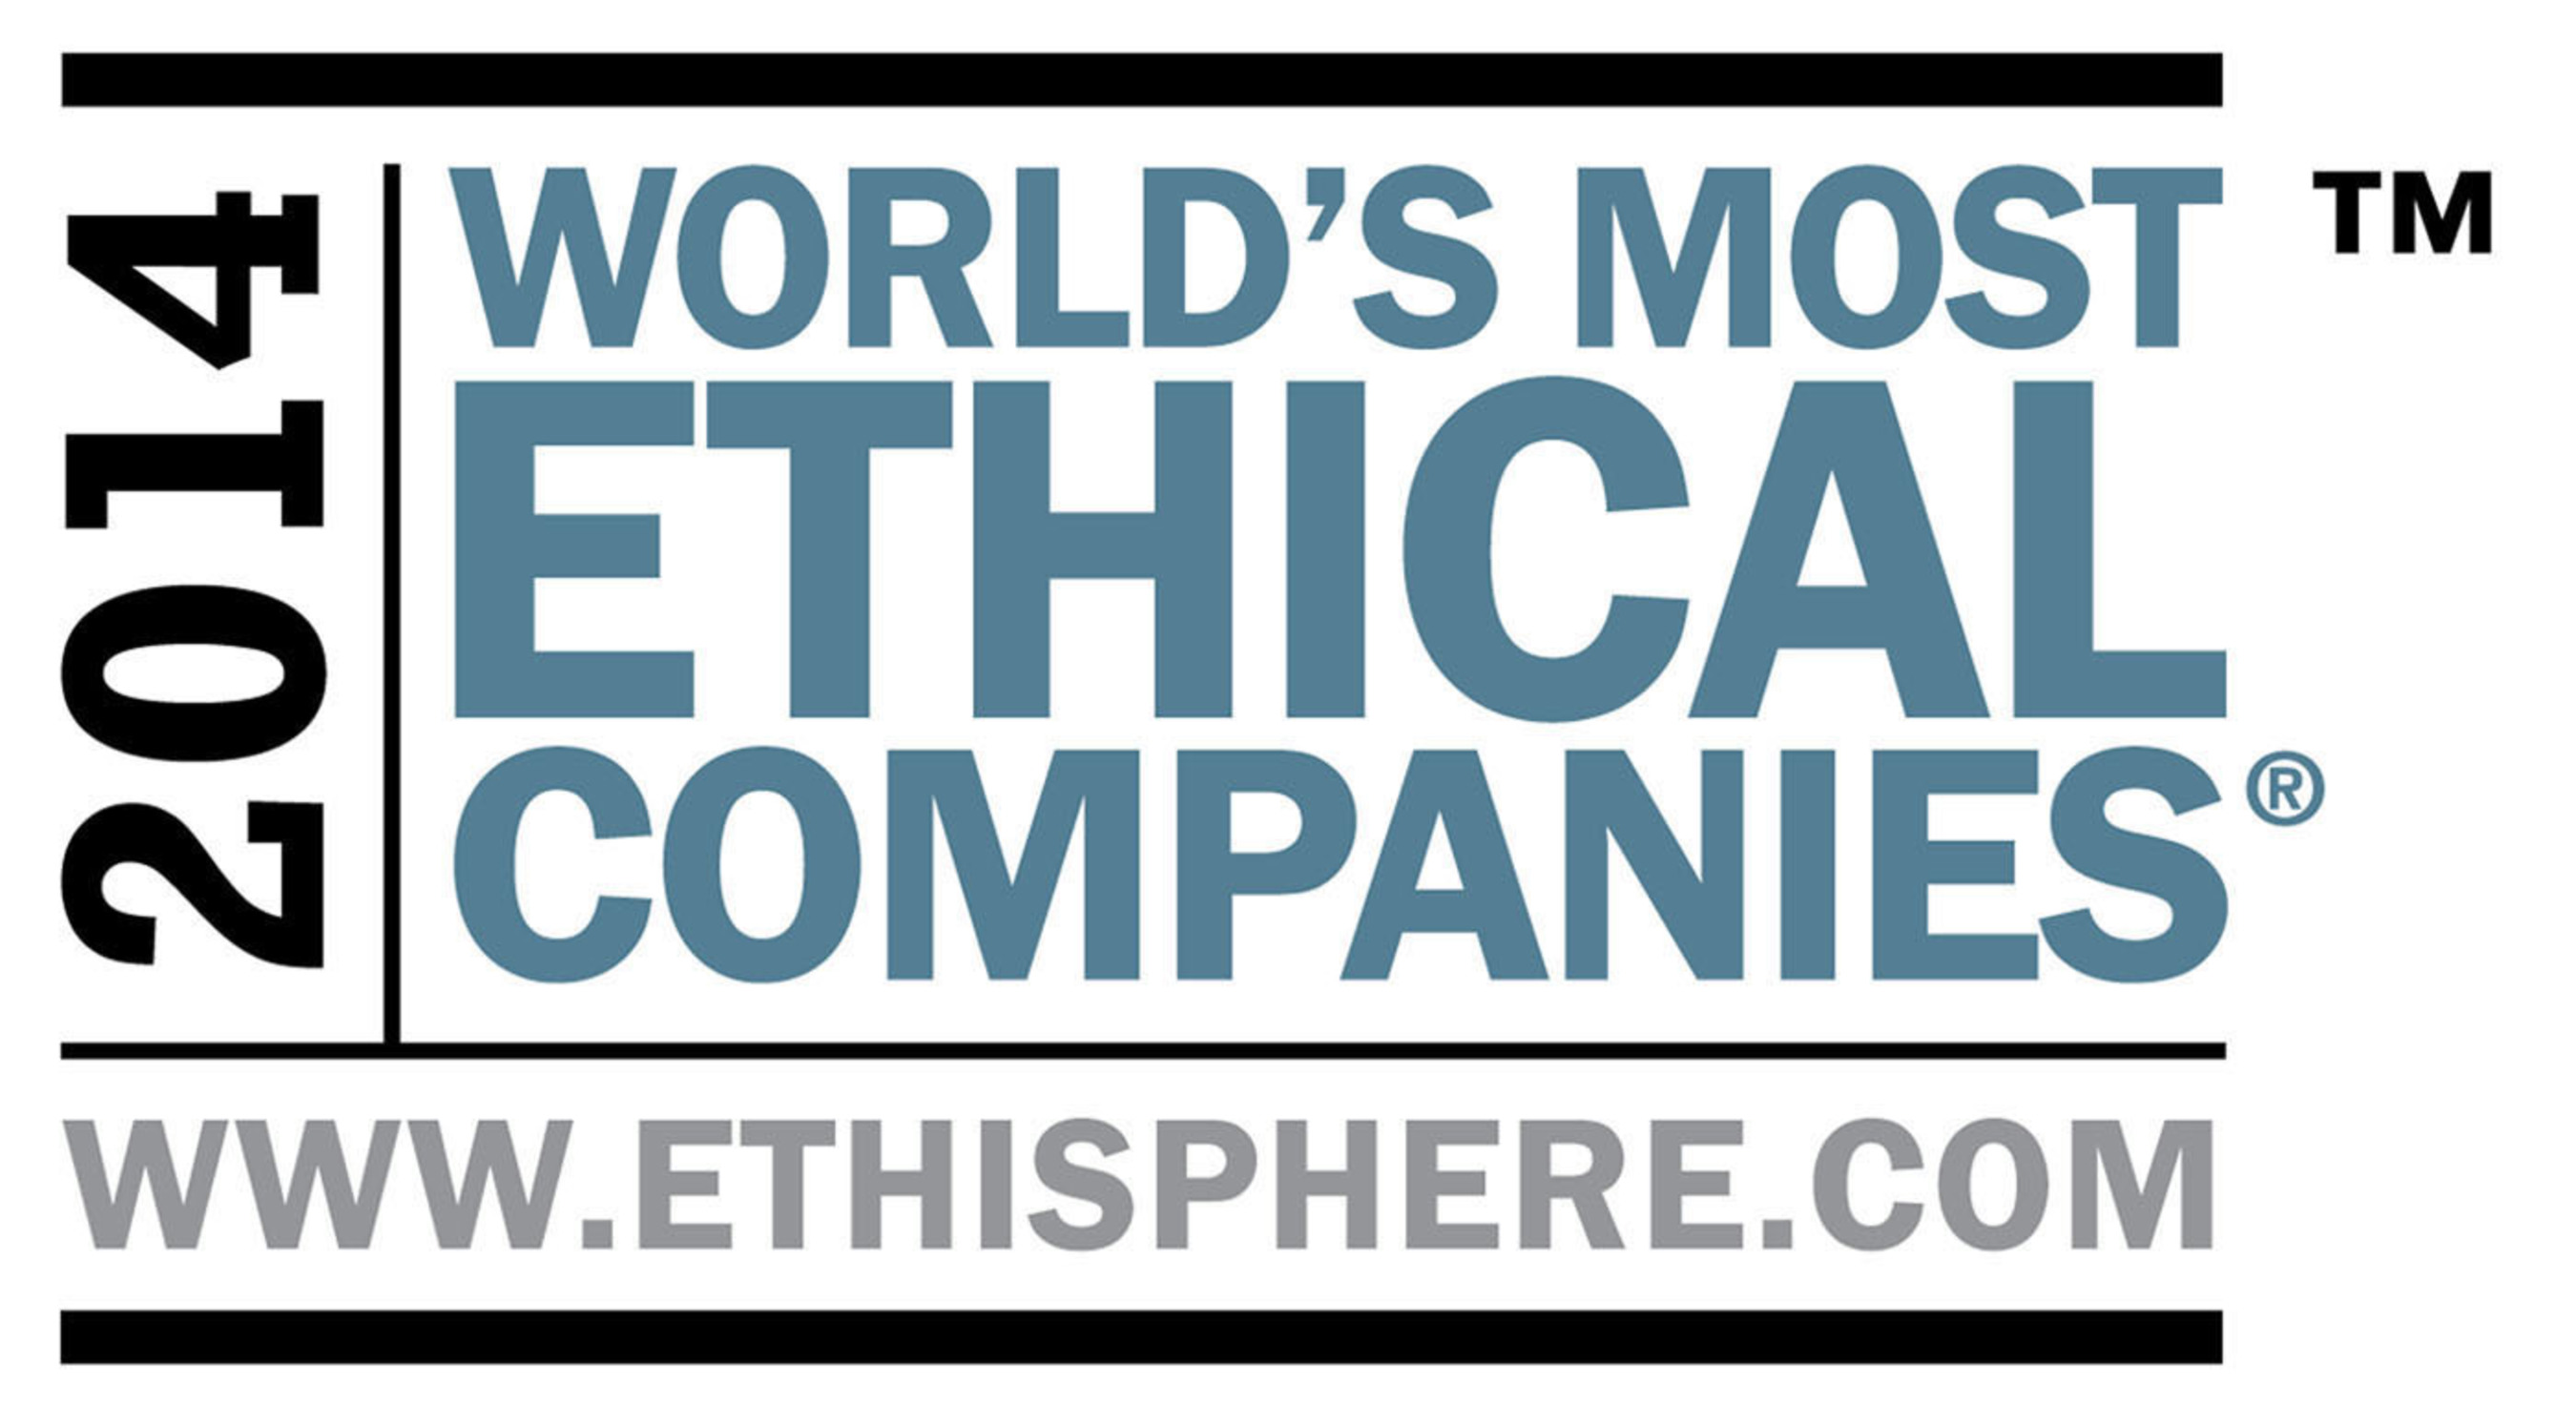 NiSource Named a World's Most Ethical Company Three Years in a Row. (PRNewsFoto/NiSource Inc.) (PRNewsFoto/NISOURCE INC.)